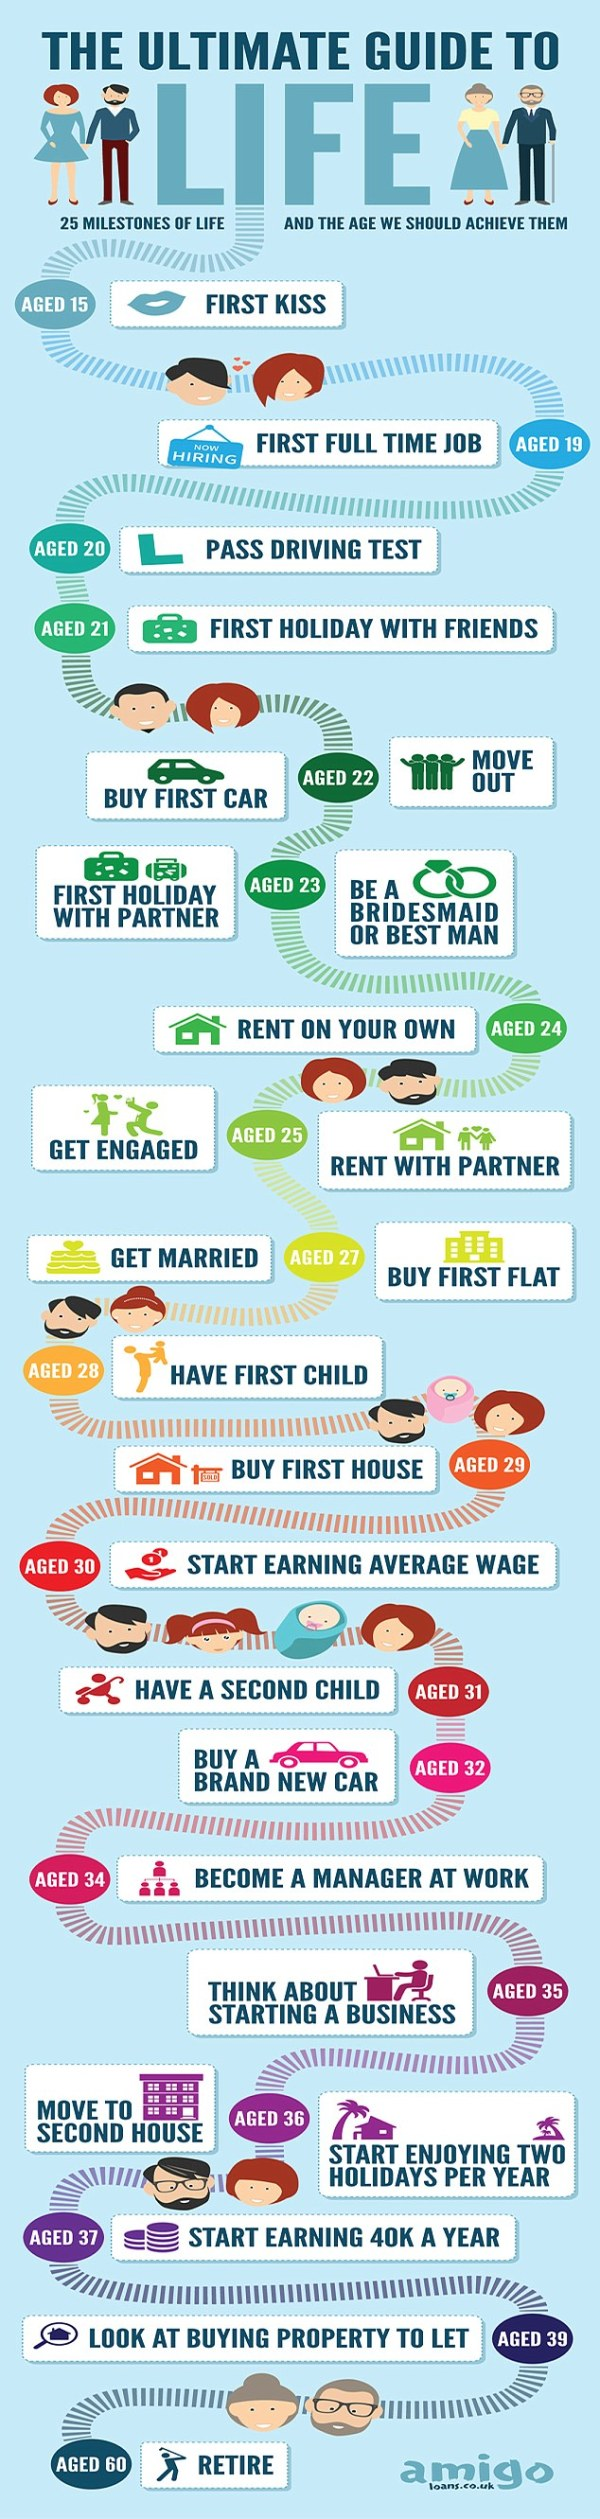 Marriage at 27, first house at 29 and earning £40,000 a ...